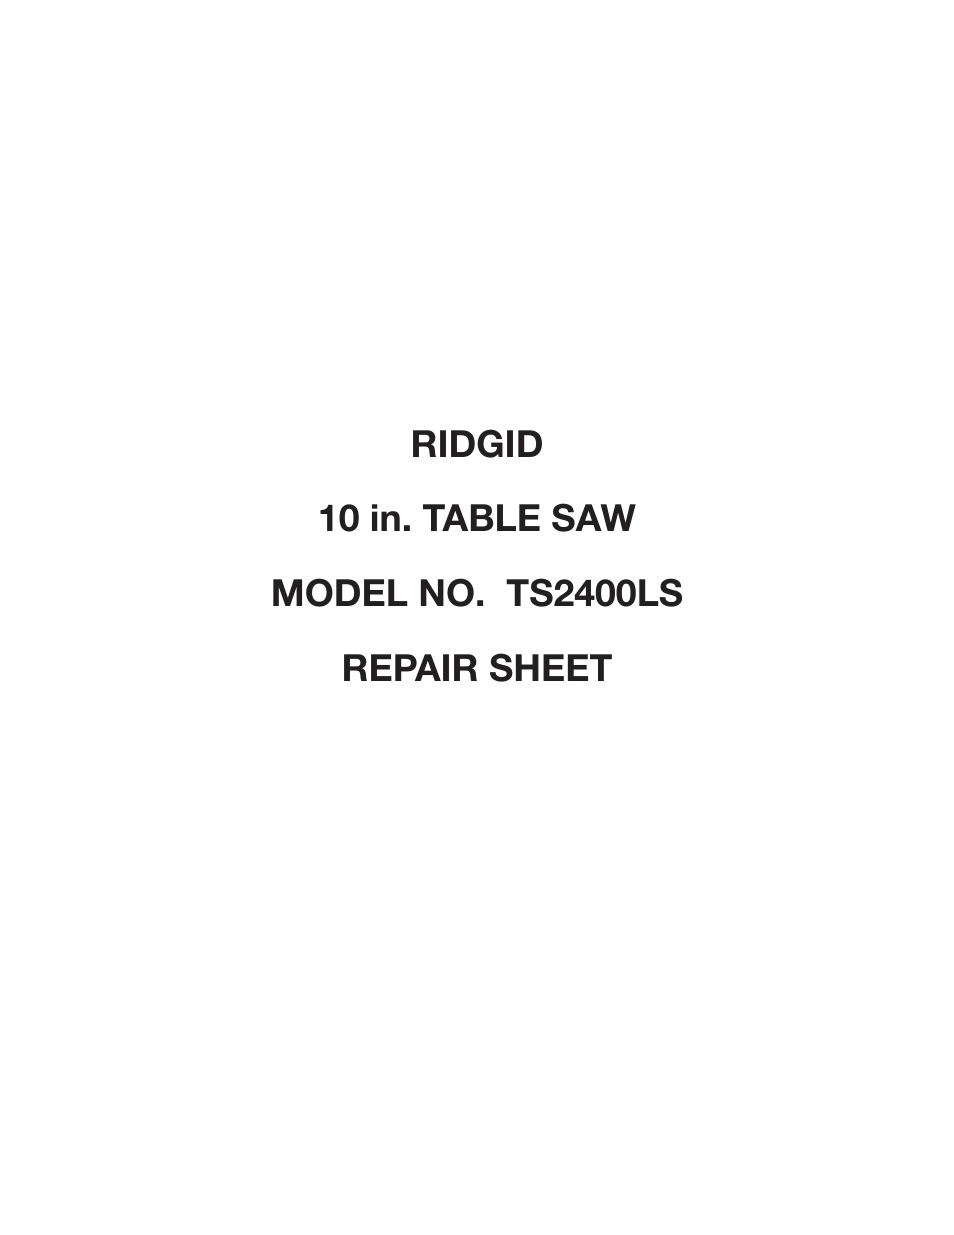 Marvelous Ridgid Ts2400Ls User Manual 39 Pages Download Free Architecture Designs Scobabritishbridgeorg